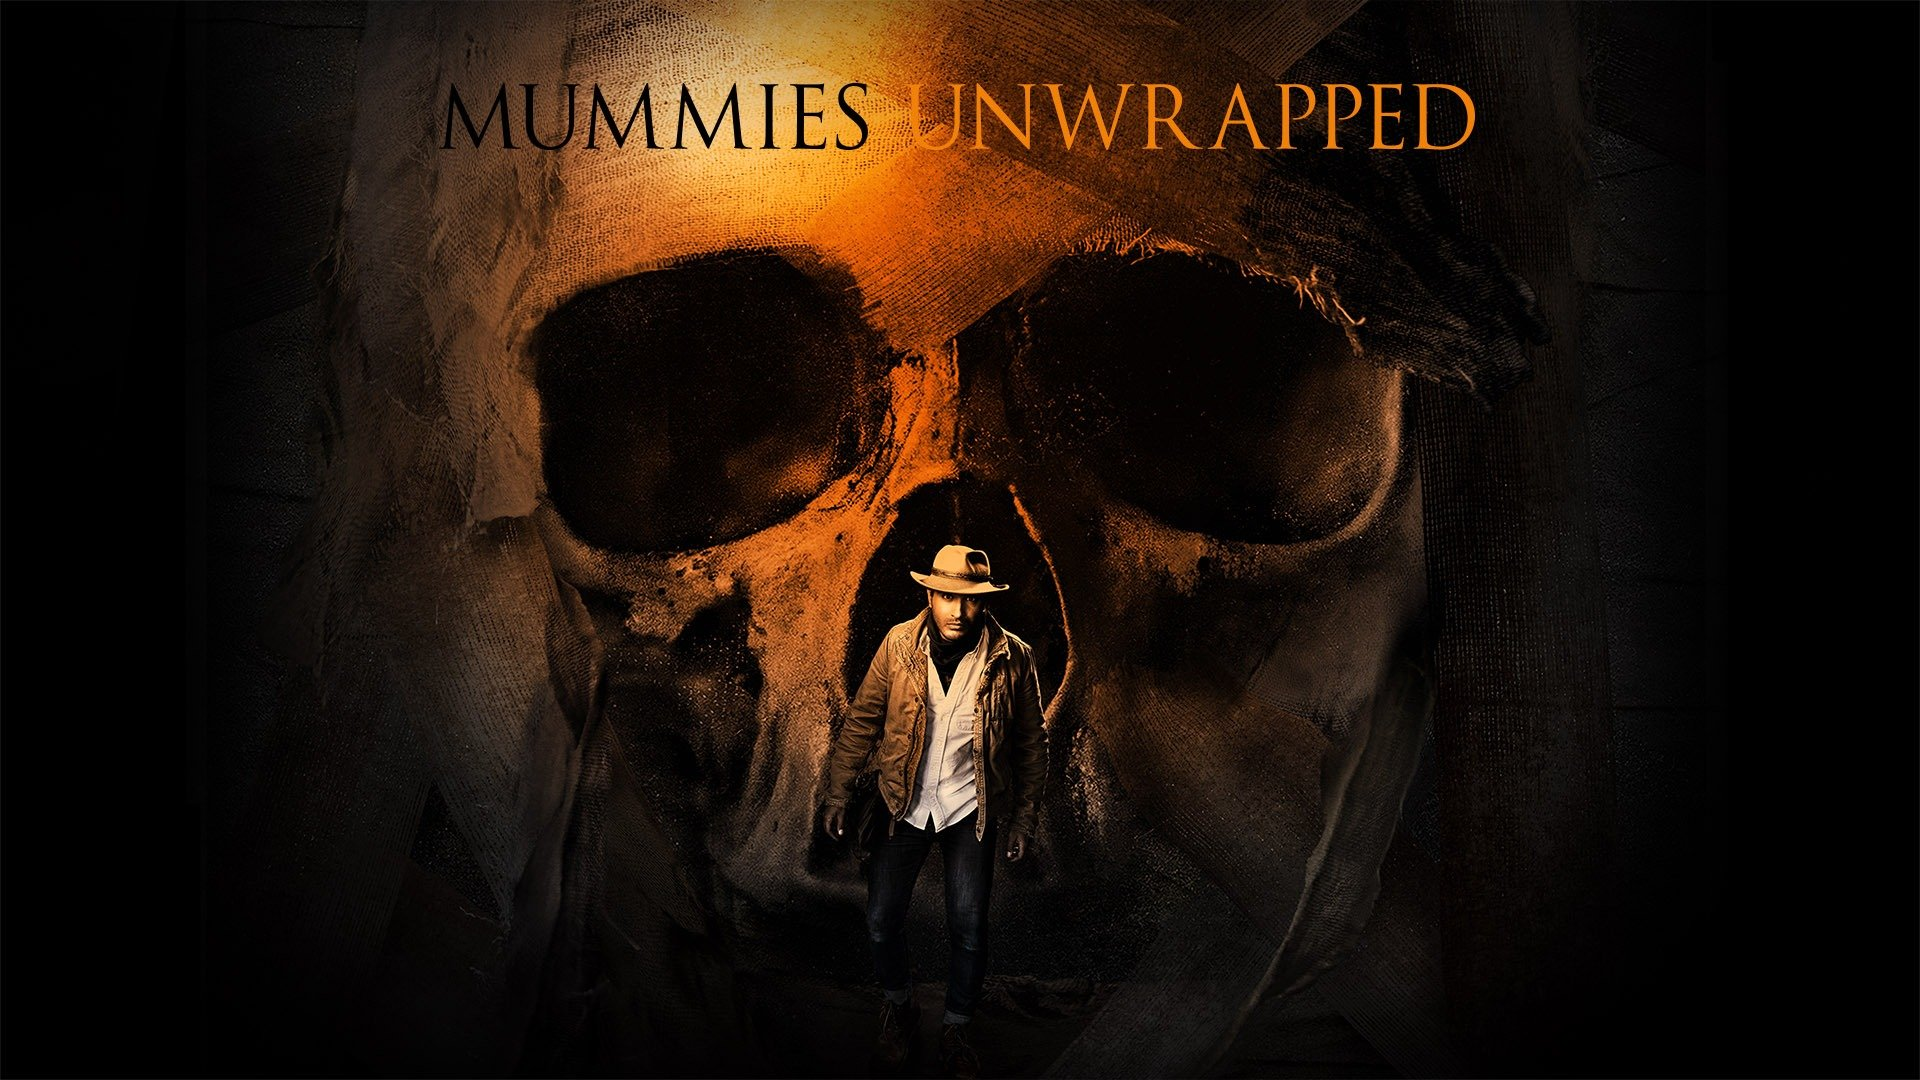 Mummies Unwrapped